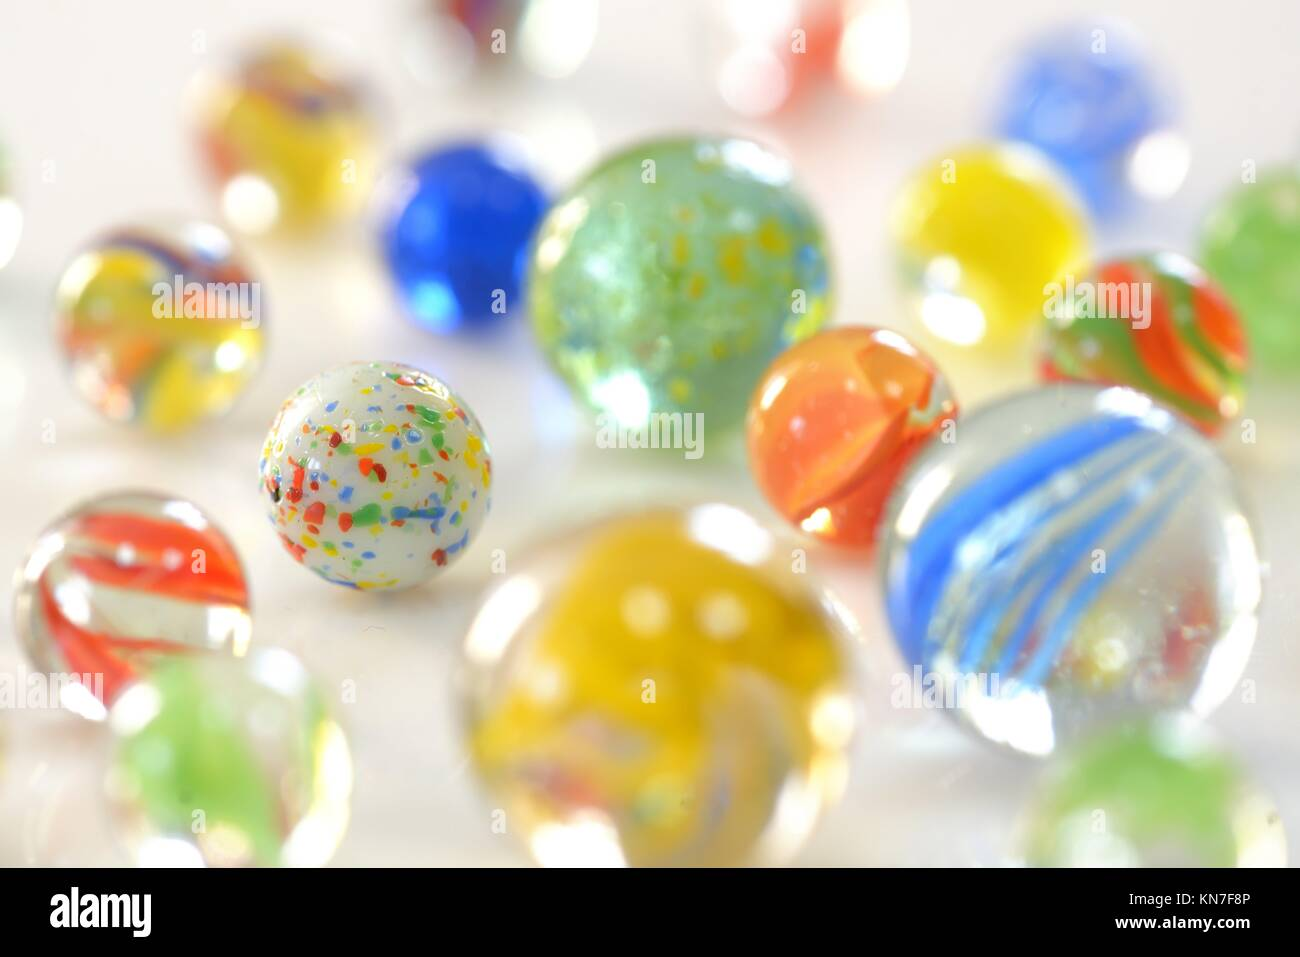 Details of different marble glass ball Stock Photo: 167966758 - Alamy